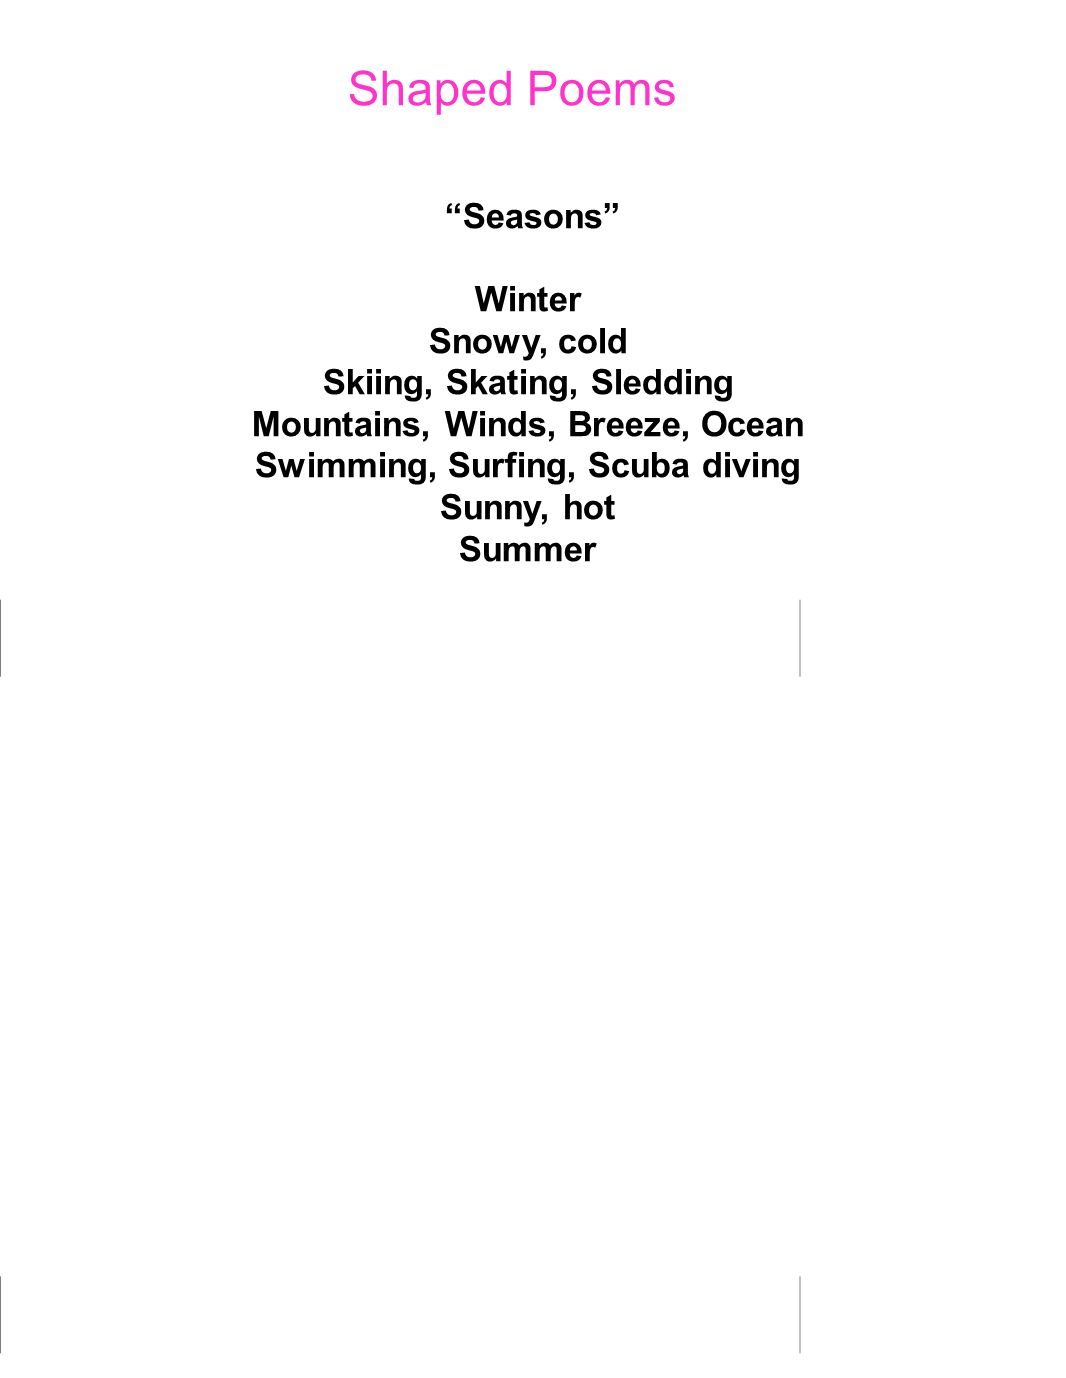 Shaped Poems Seasons Winter Snowy, cold Skiing, Skating, Sledding Mountains, Winds, Breeze, Ocean Swimming, Surfing, Scuba diving Sunny, hot Summer